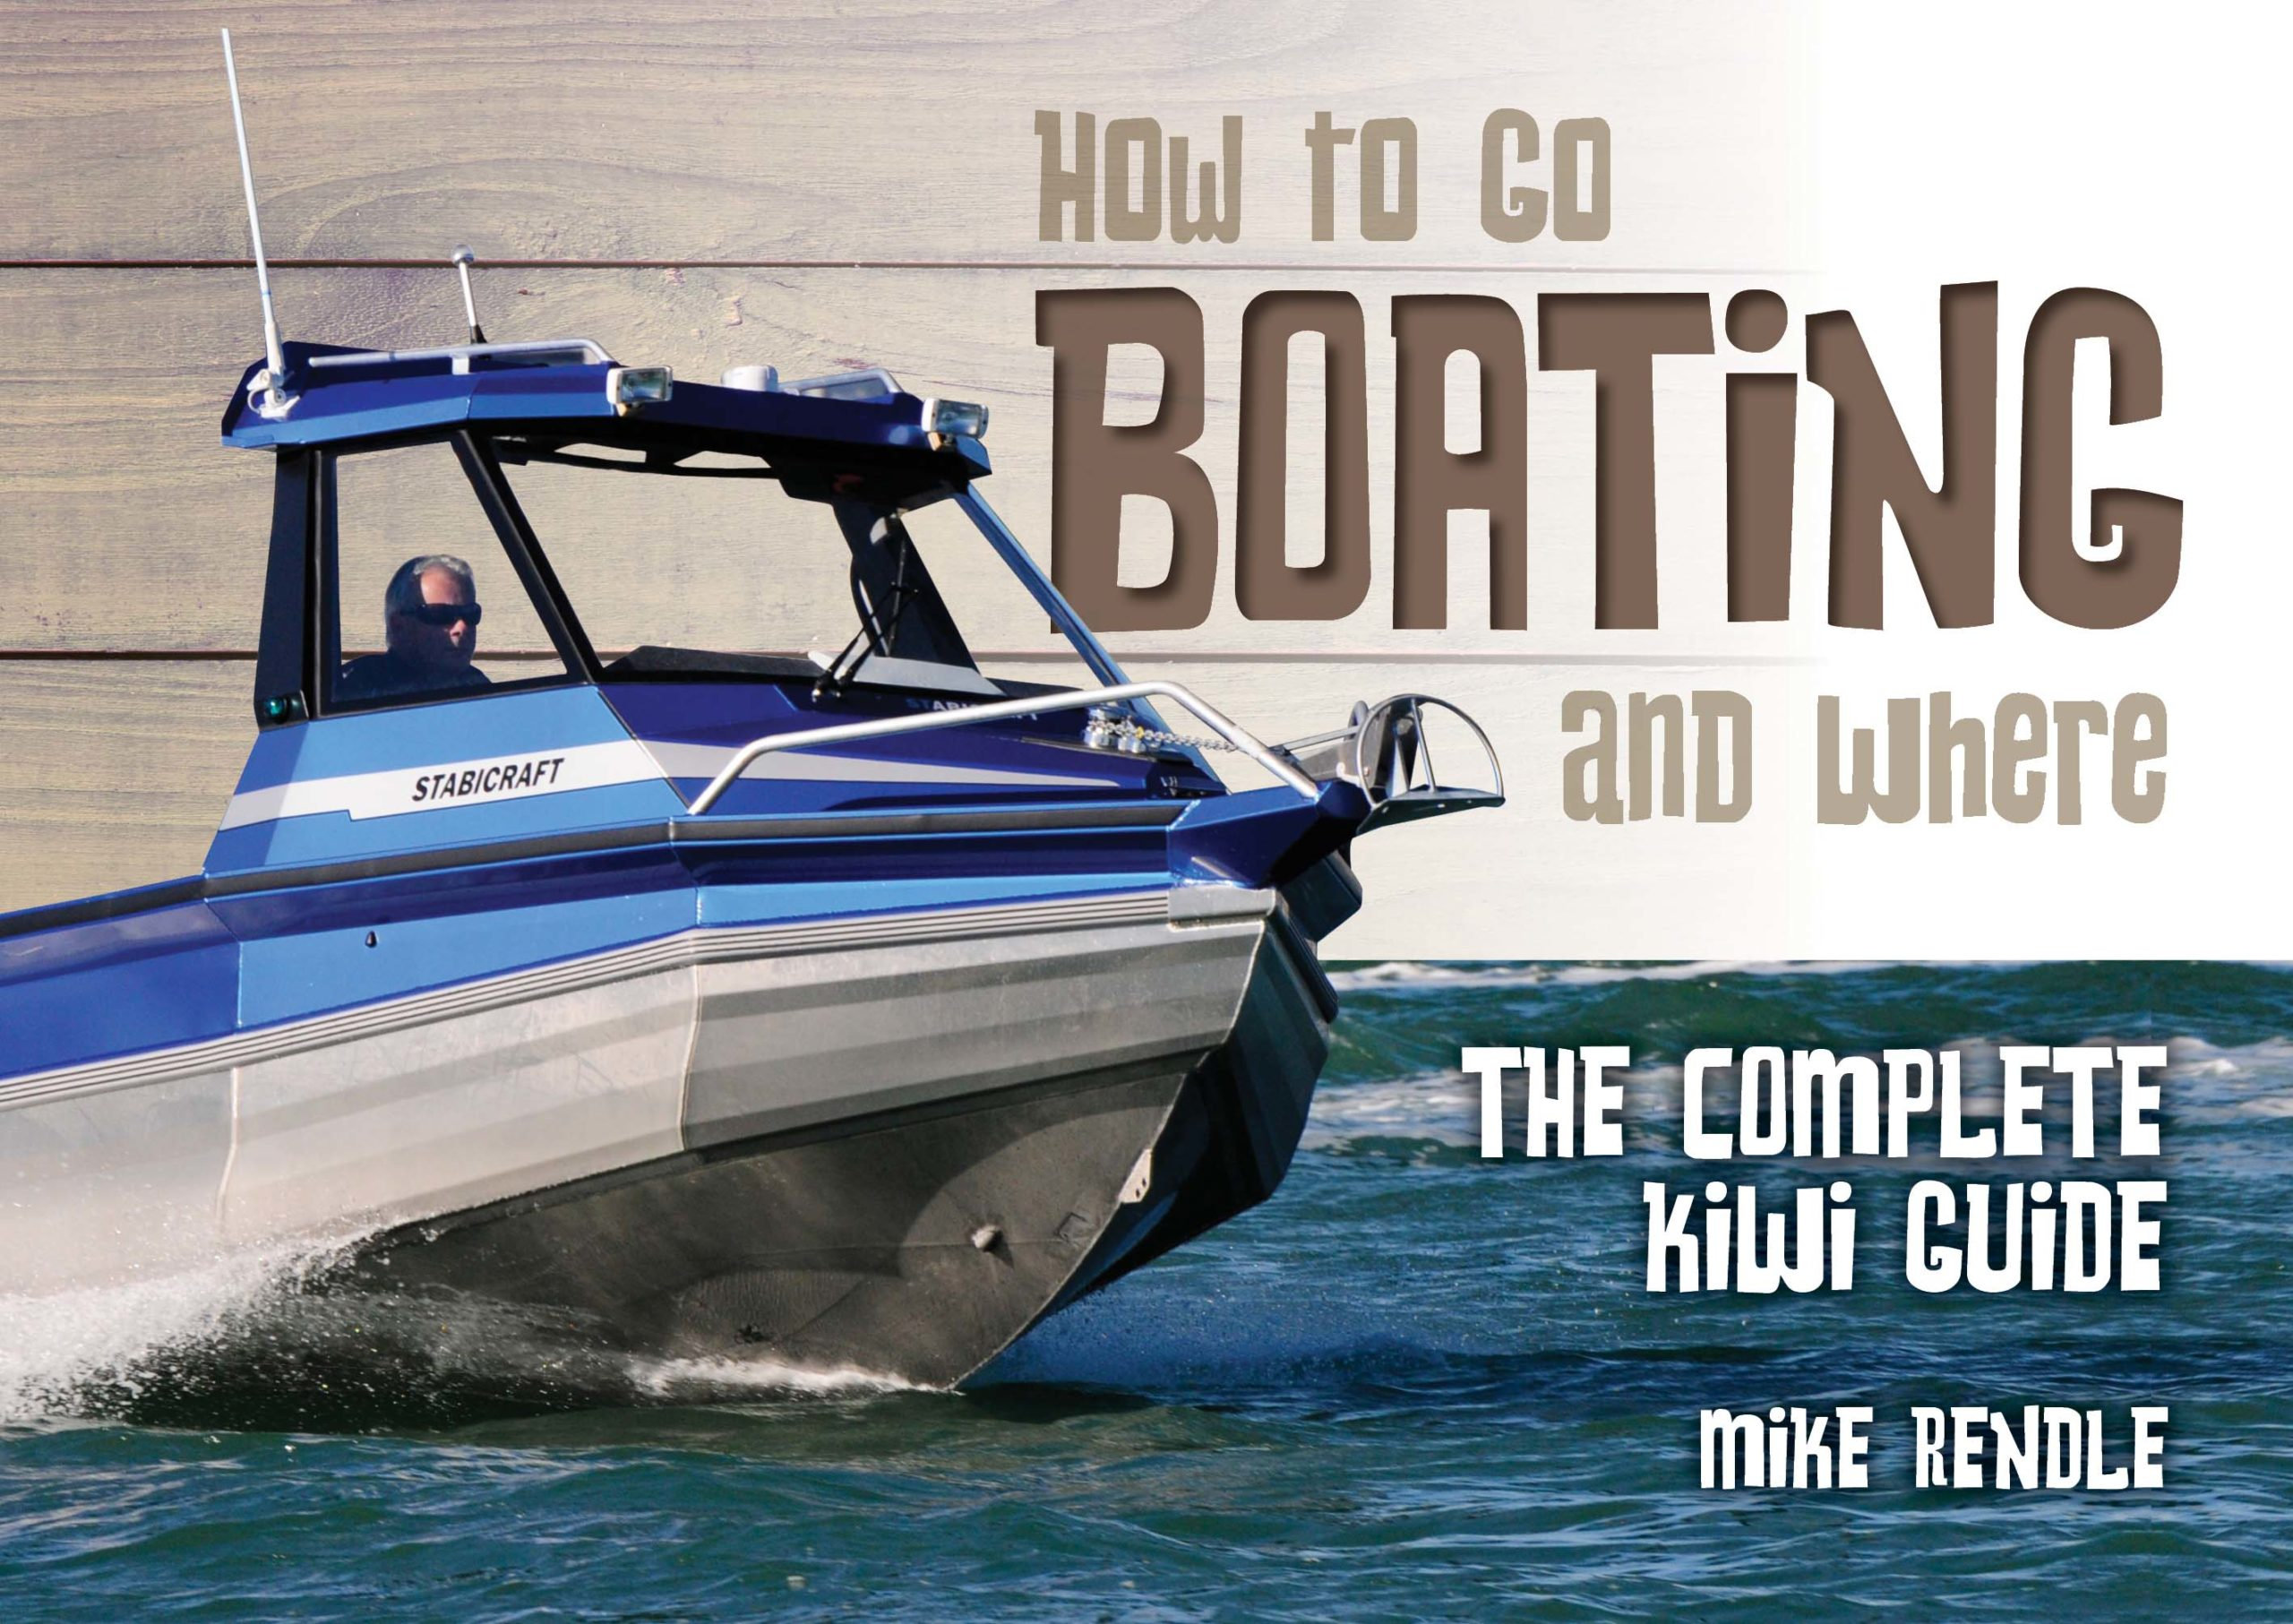 How to Go Boating and Where PB